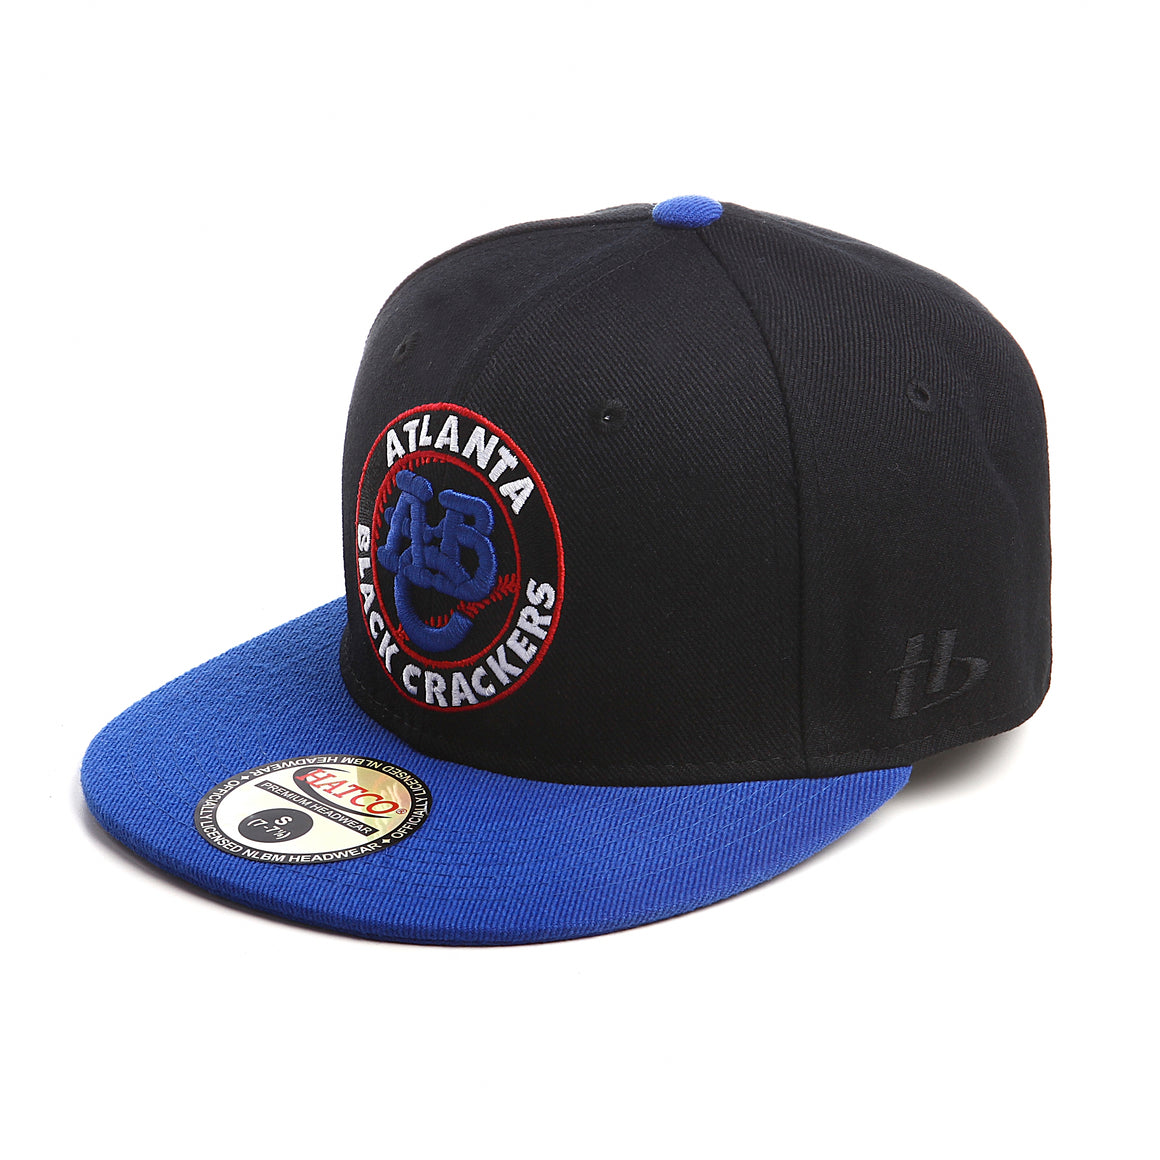 NLBM - Atlanta Black Crackers - Fitted Cap - HATCOcaps.com  - 1